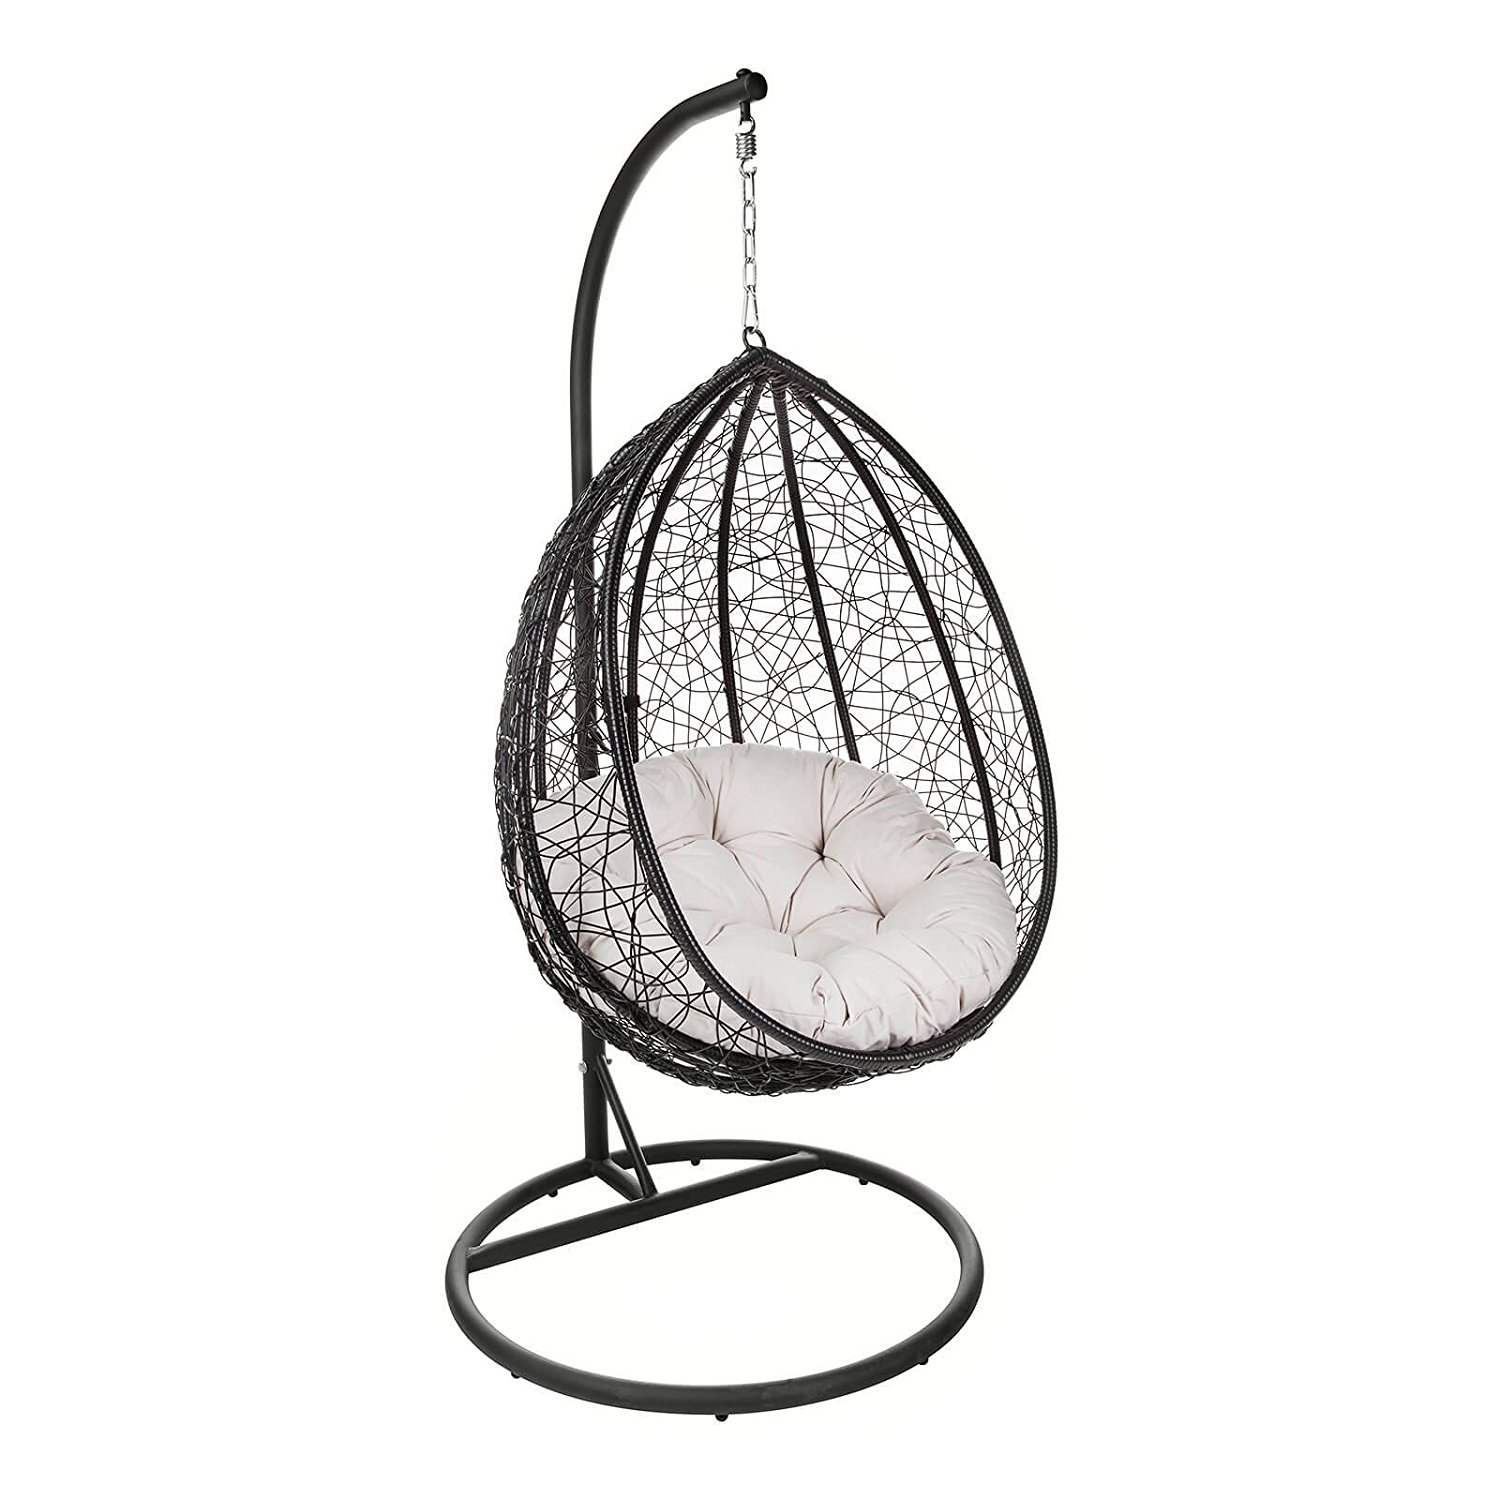 Outdoor Patio Hanging Chair Indoor Egg Swing Chair With Stand